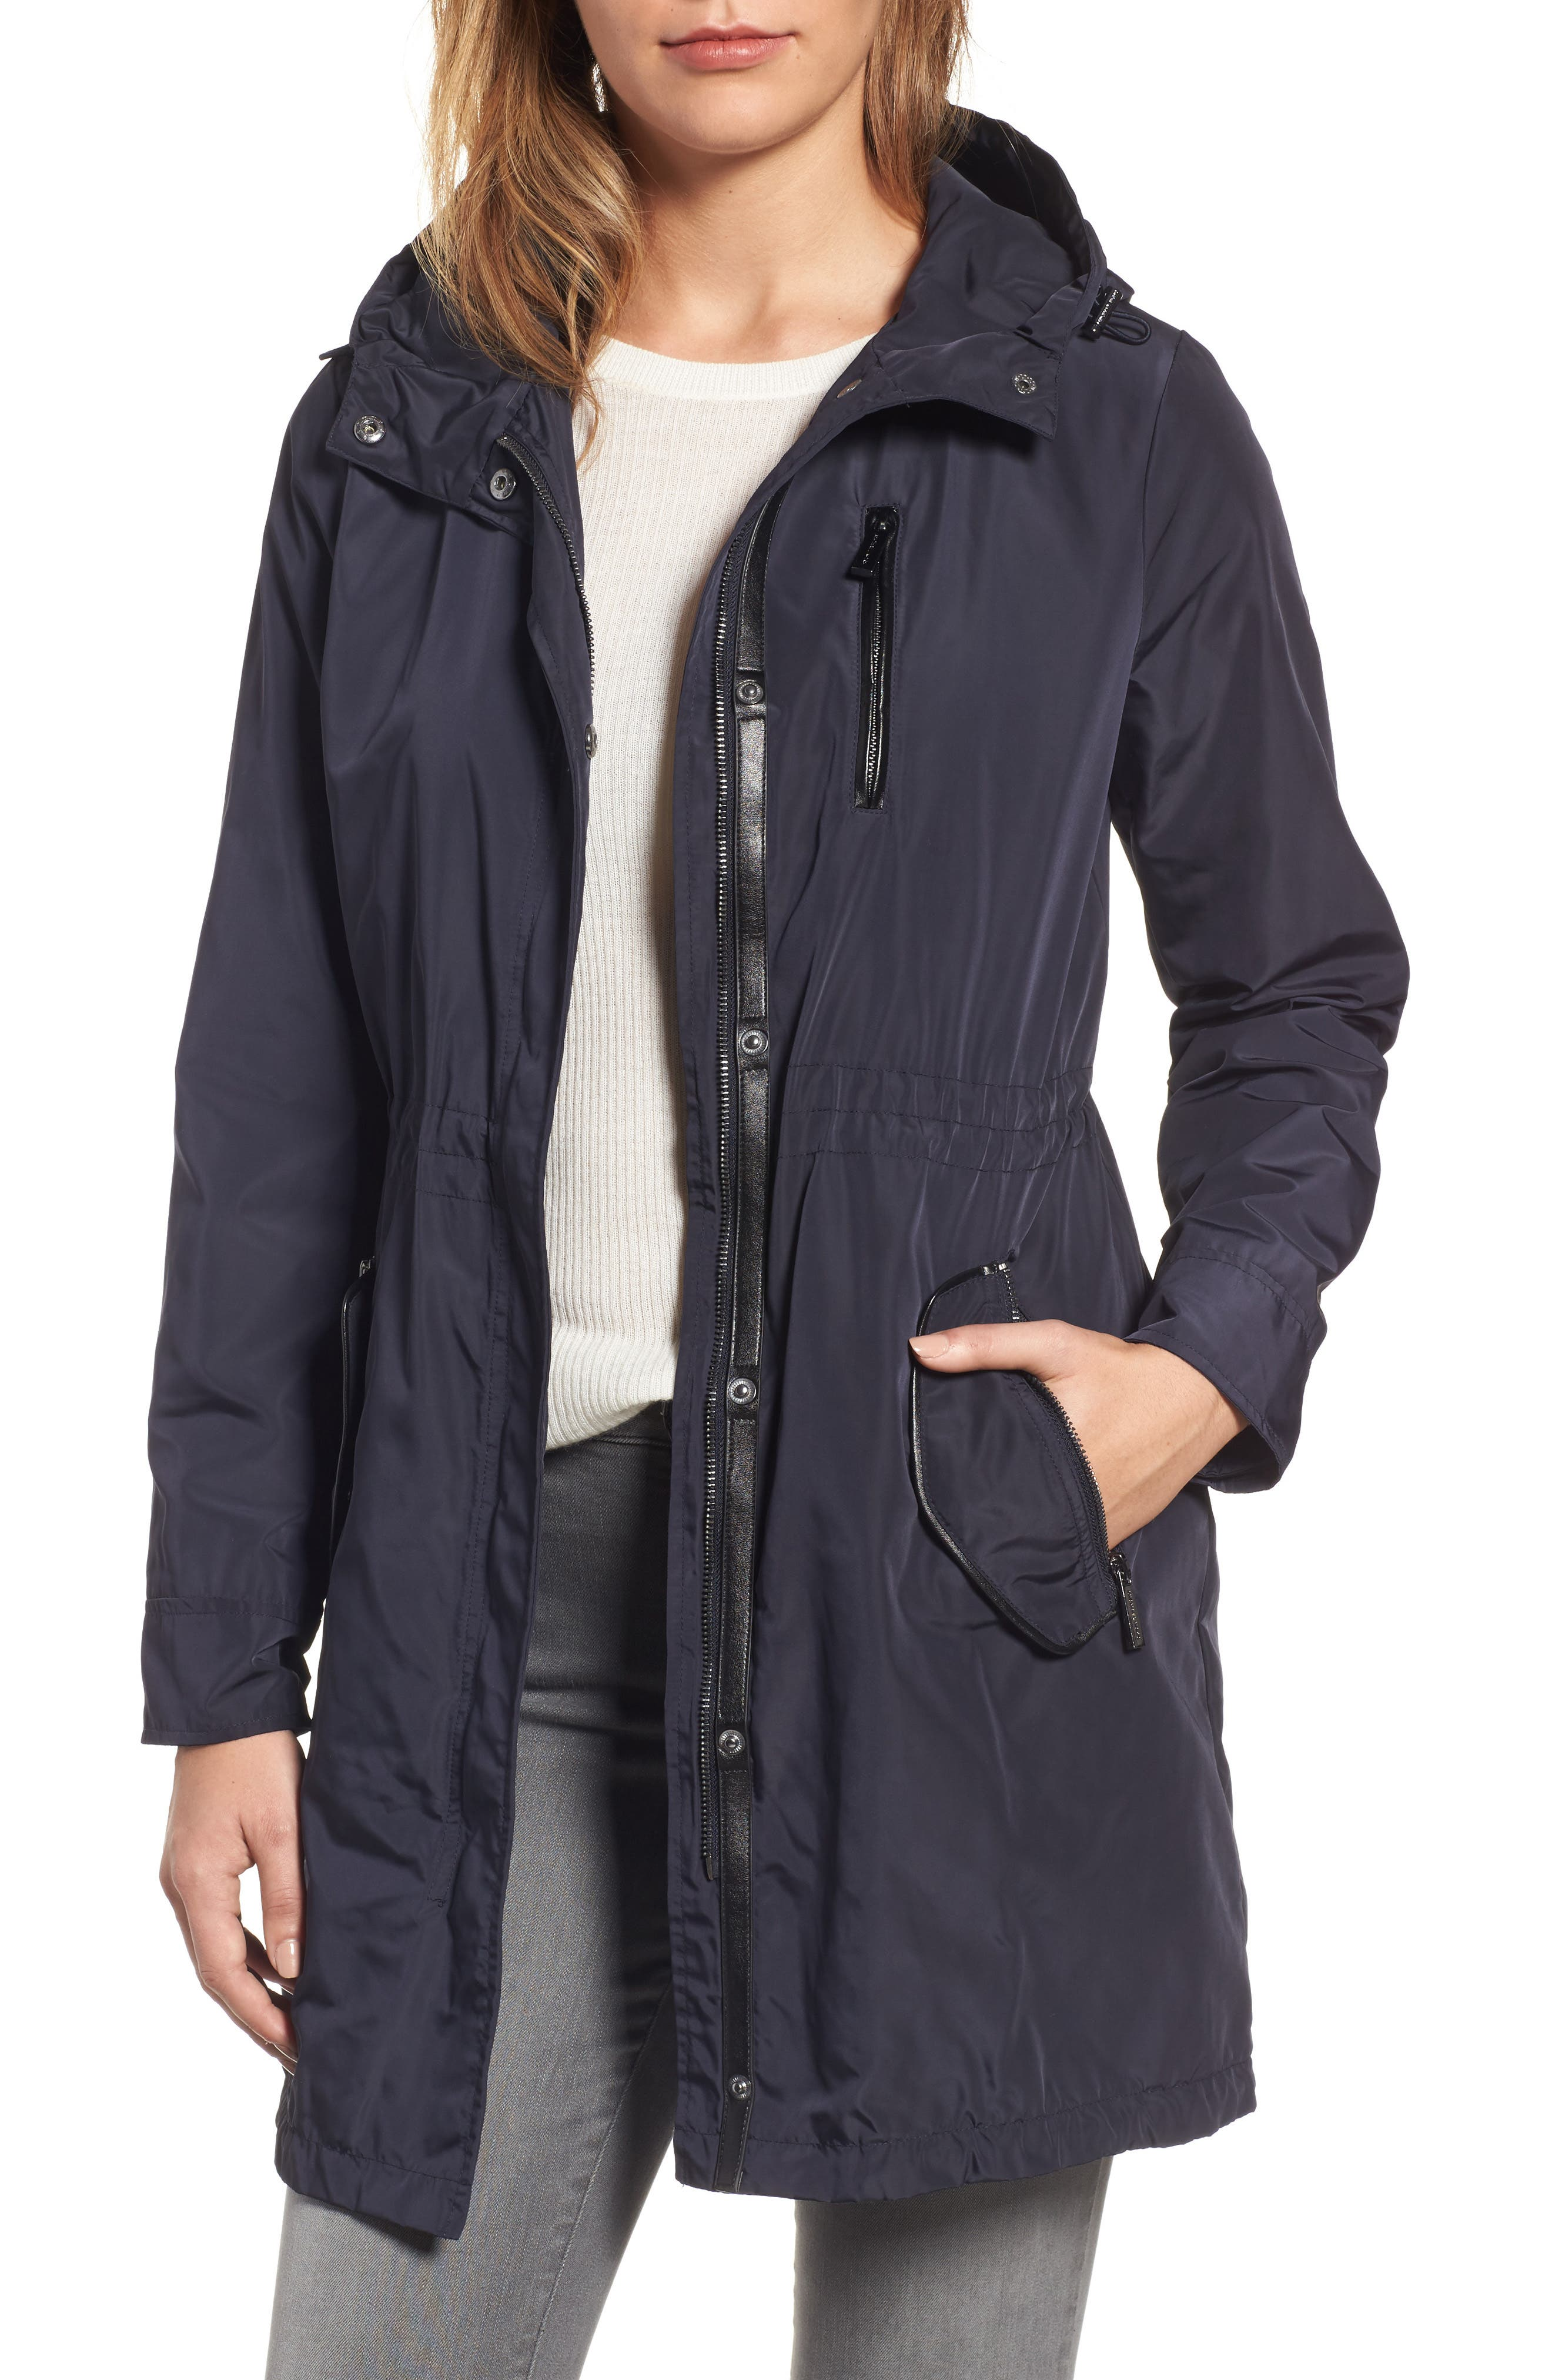 MICHAEL Michael Kors Hooded Drawstring Long Coat (Regular & Petite)